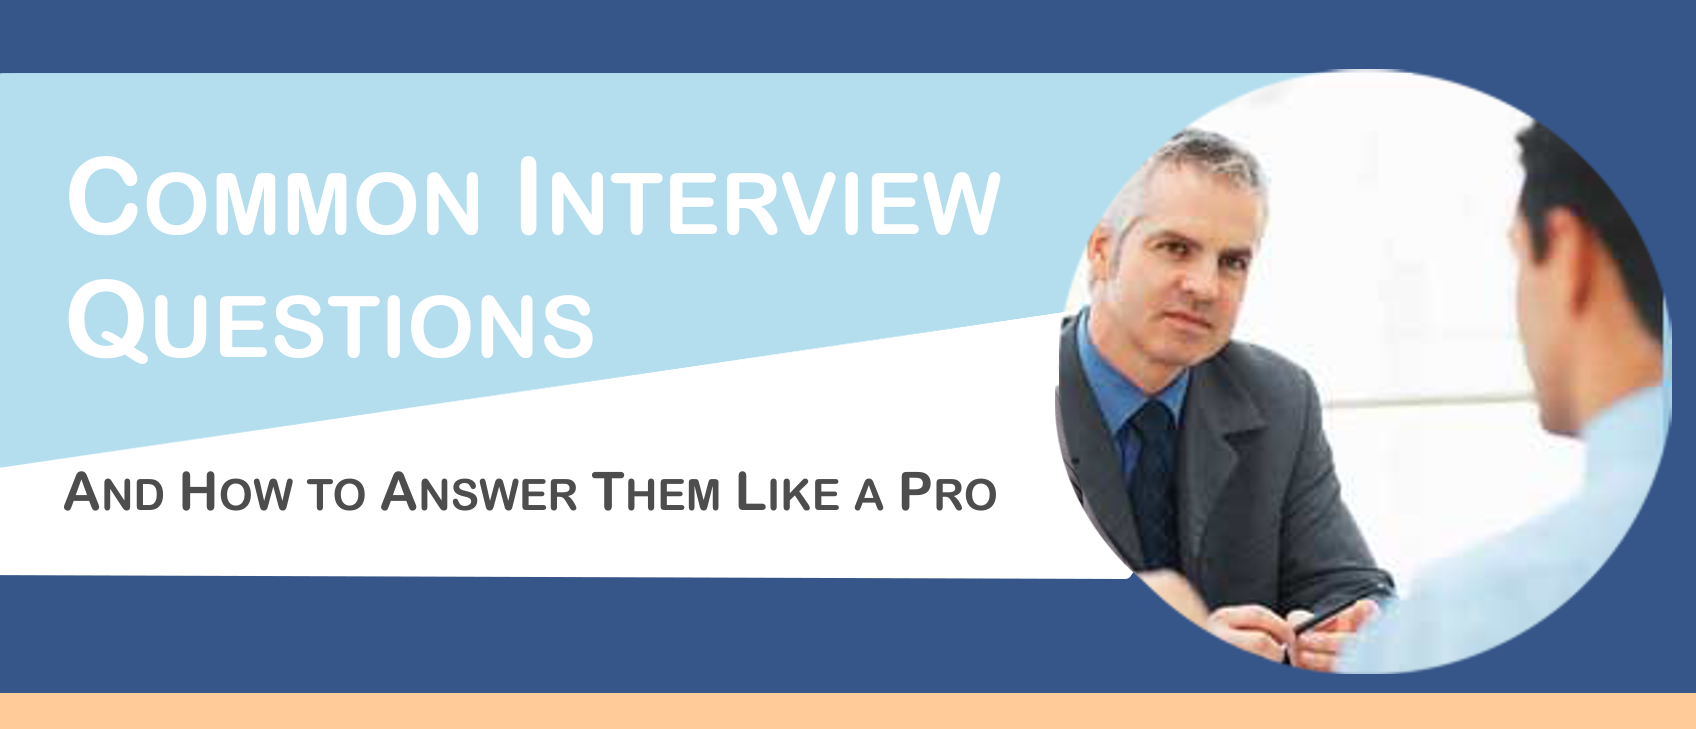 Common Screening Questions Asked at Job Interviews